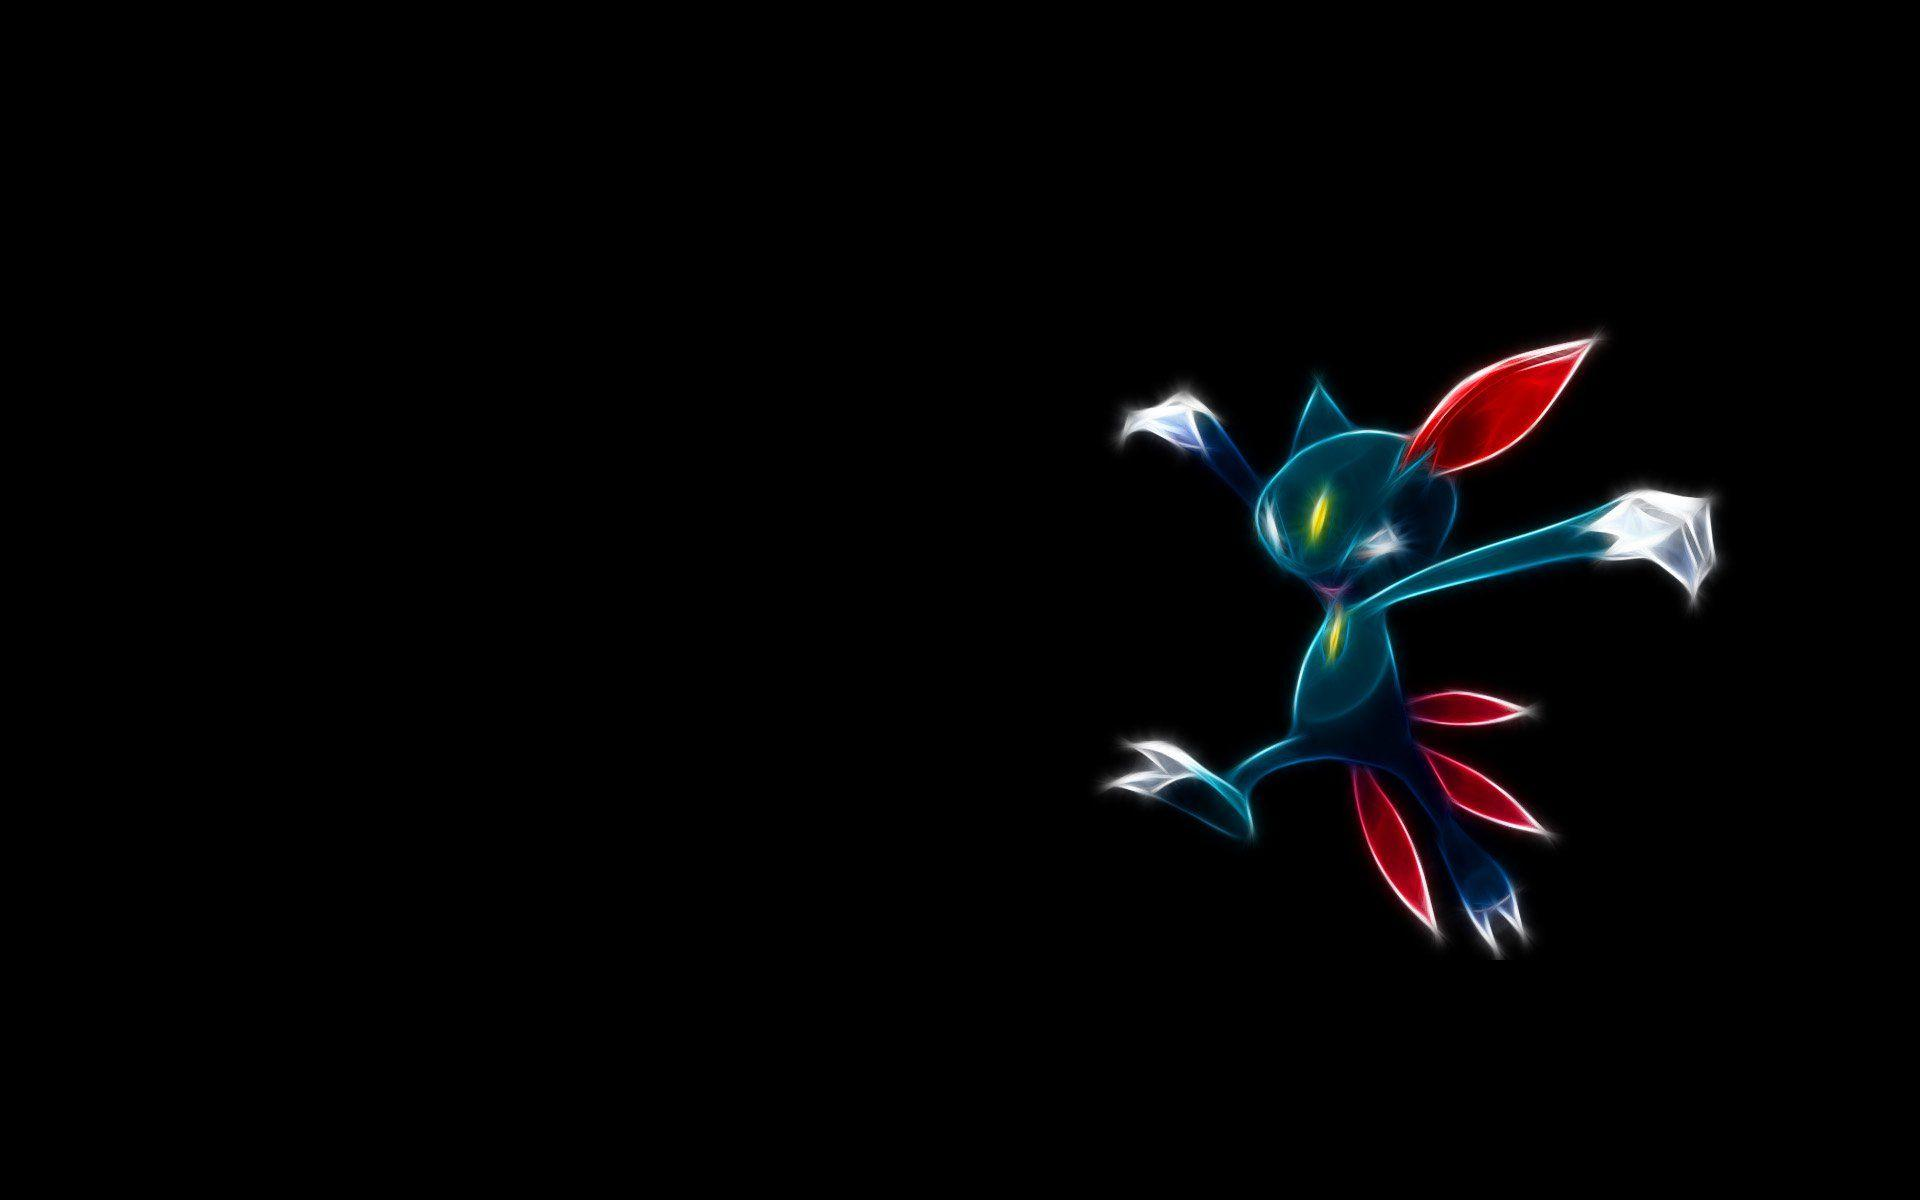 4 Sneasel (Pokémon) HD Wallpapers | Background Images - Wallpaper Abyss